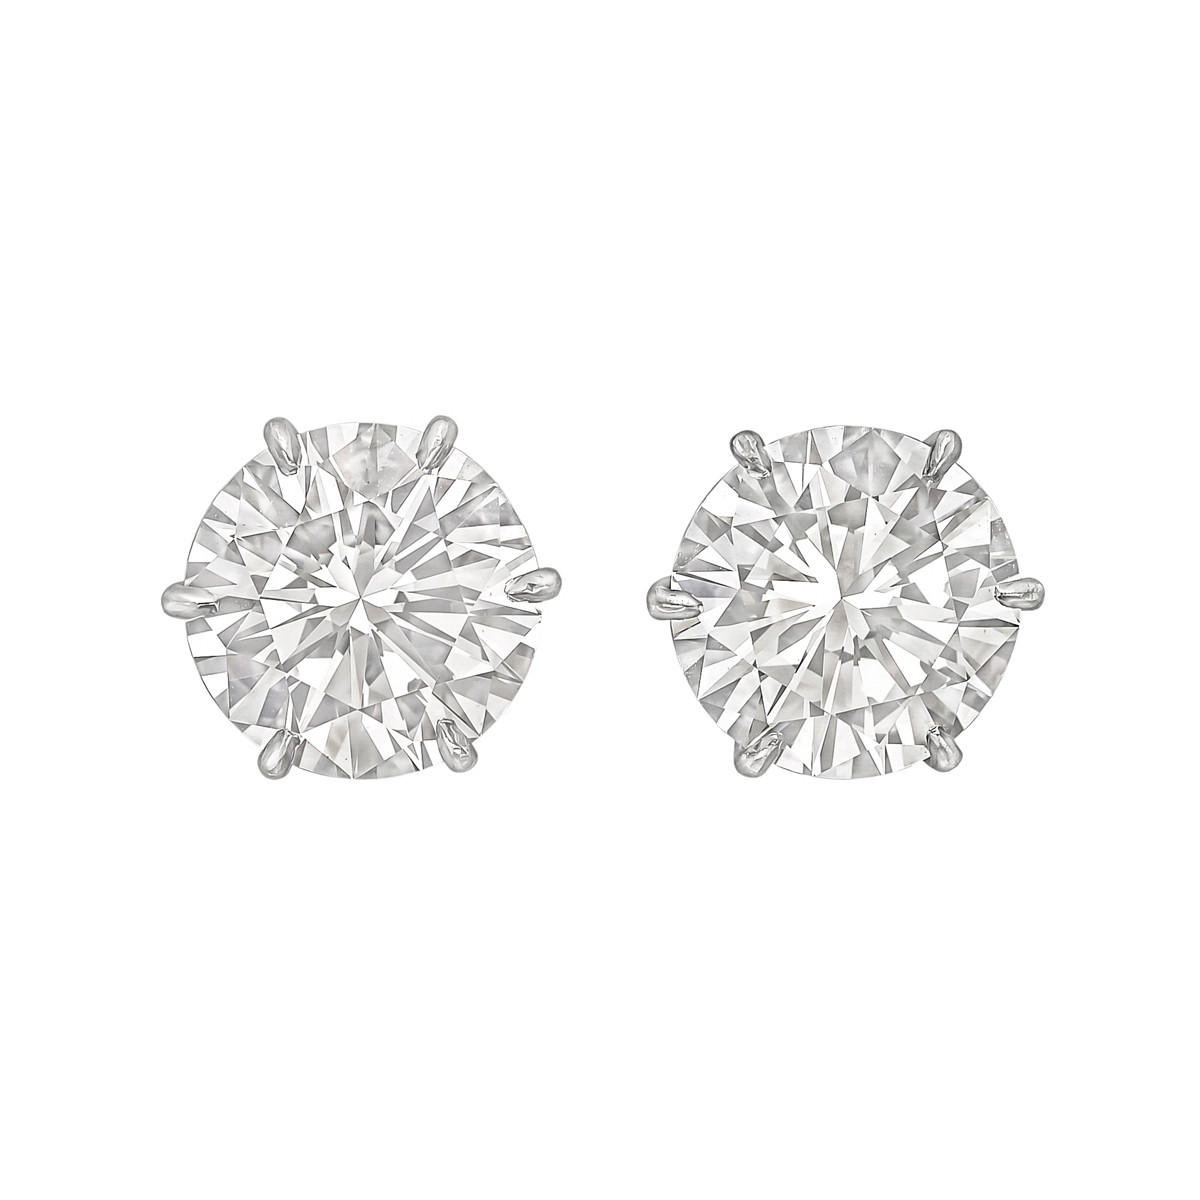 4.18tcw Round Brilliant Diamond Stud Earrings (D/VS1)